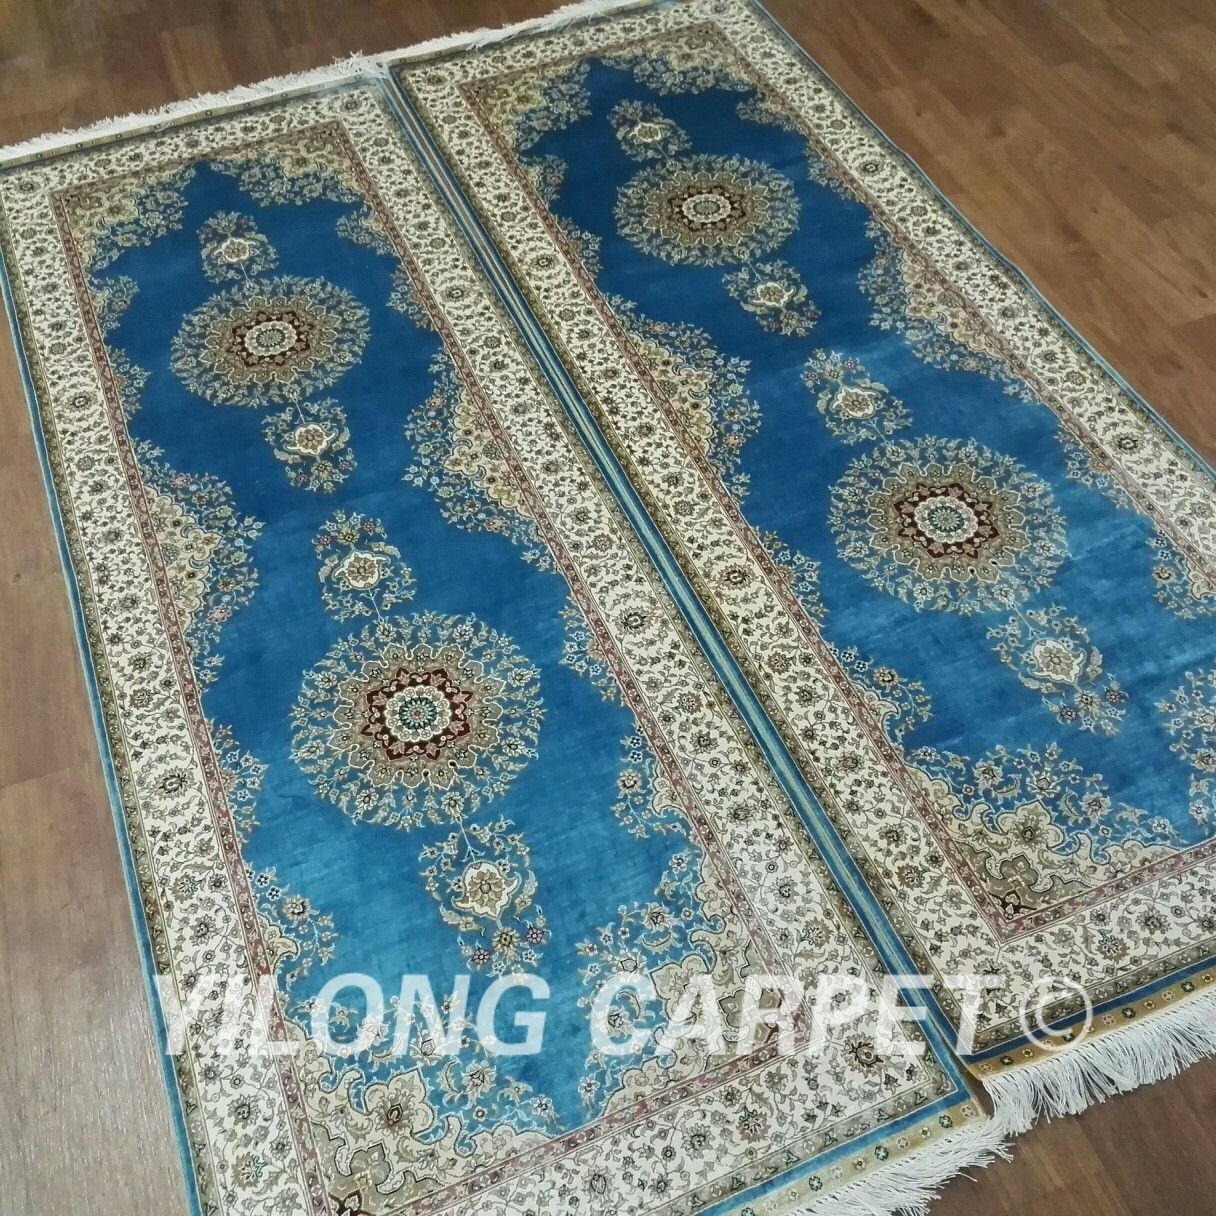 Vantage A Pair Of 2 5 7ft Classic Handmade Persian Blue Silk Rug Runner From Yilong Carpet Factory Will Be Sent To Our Customer Persianr Rug Runner